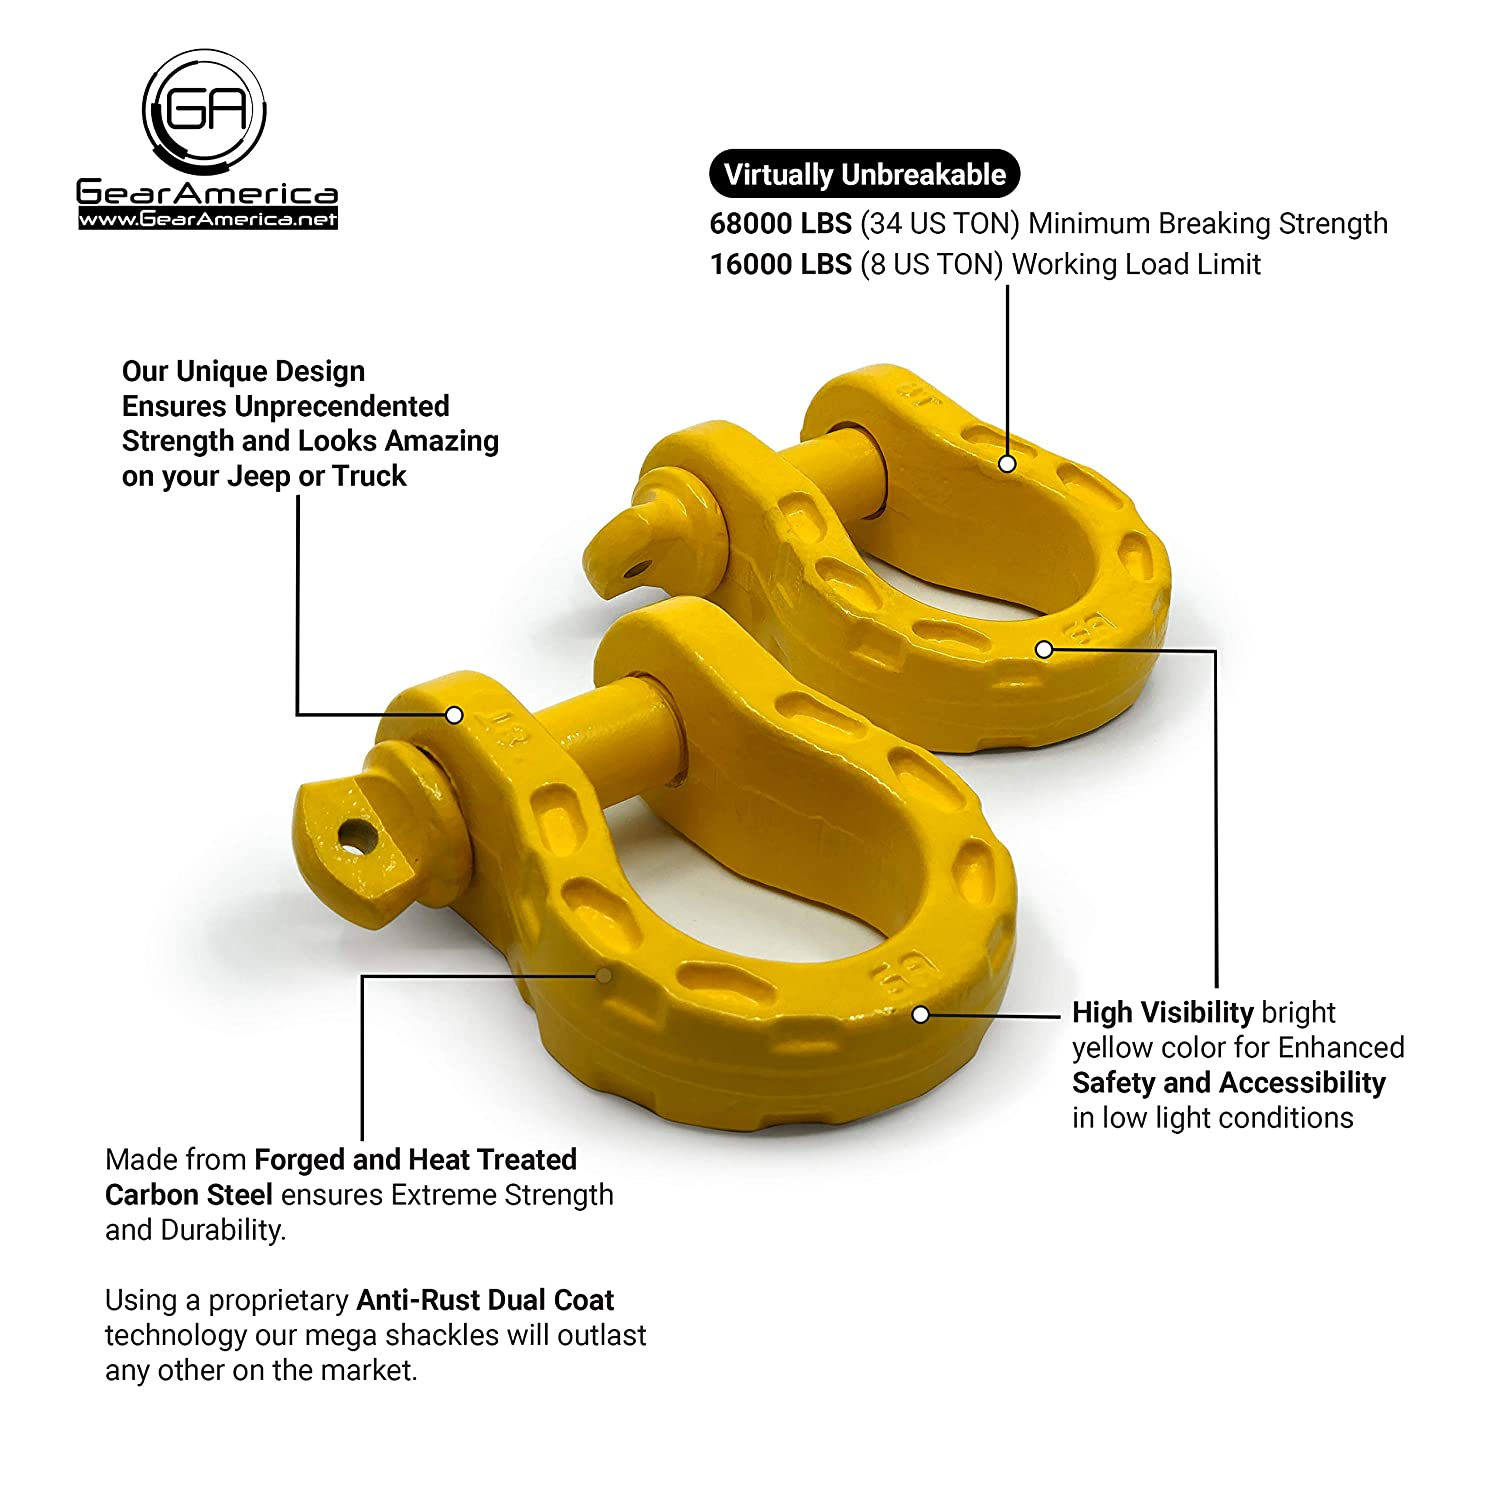 7//8 Pin 34 Ton Securely Connect Tow Strap or Winch Rope to Jeep for Off-Road Recovery Washers GearAmerica Mega Duty D Ring Shackles Galvanized 2PK 3//4 Shackle | 68000 lbs Tested Strength